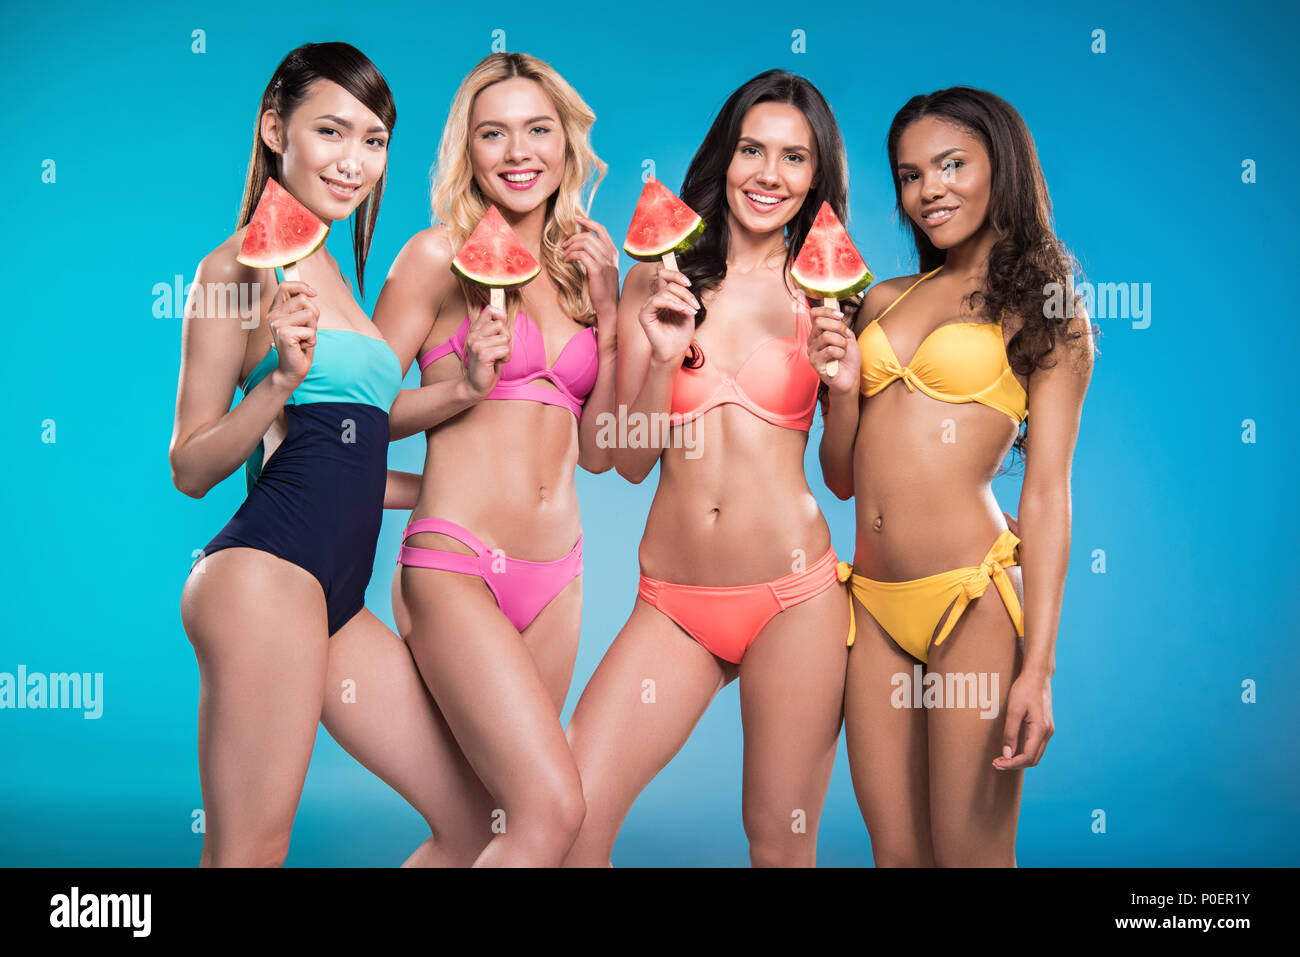 e91d3582cf attractive multiethnic girls in swimsuits posing with watermelon pieces -  Stock Image